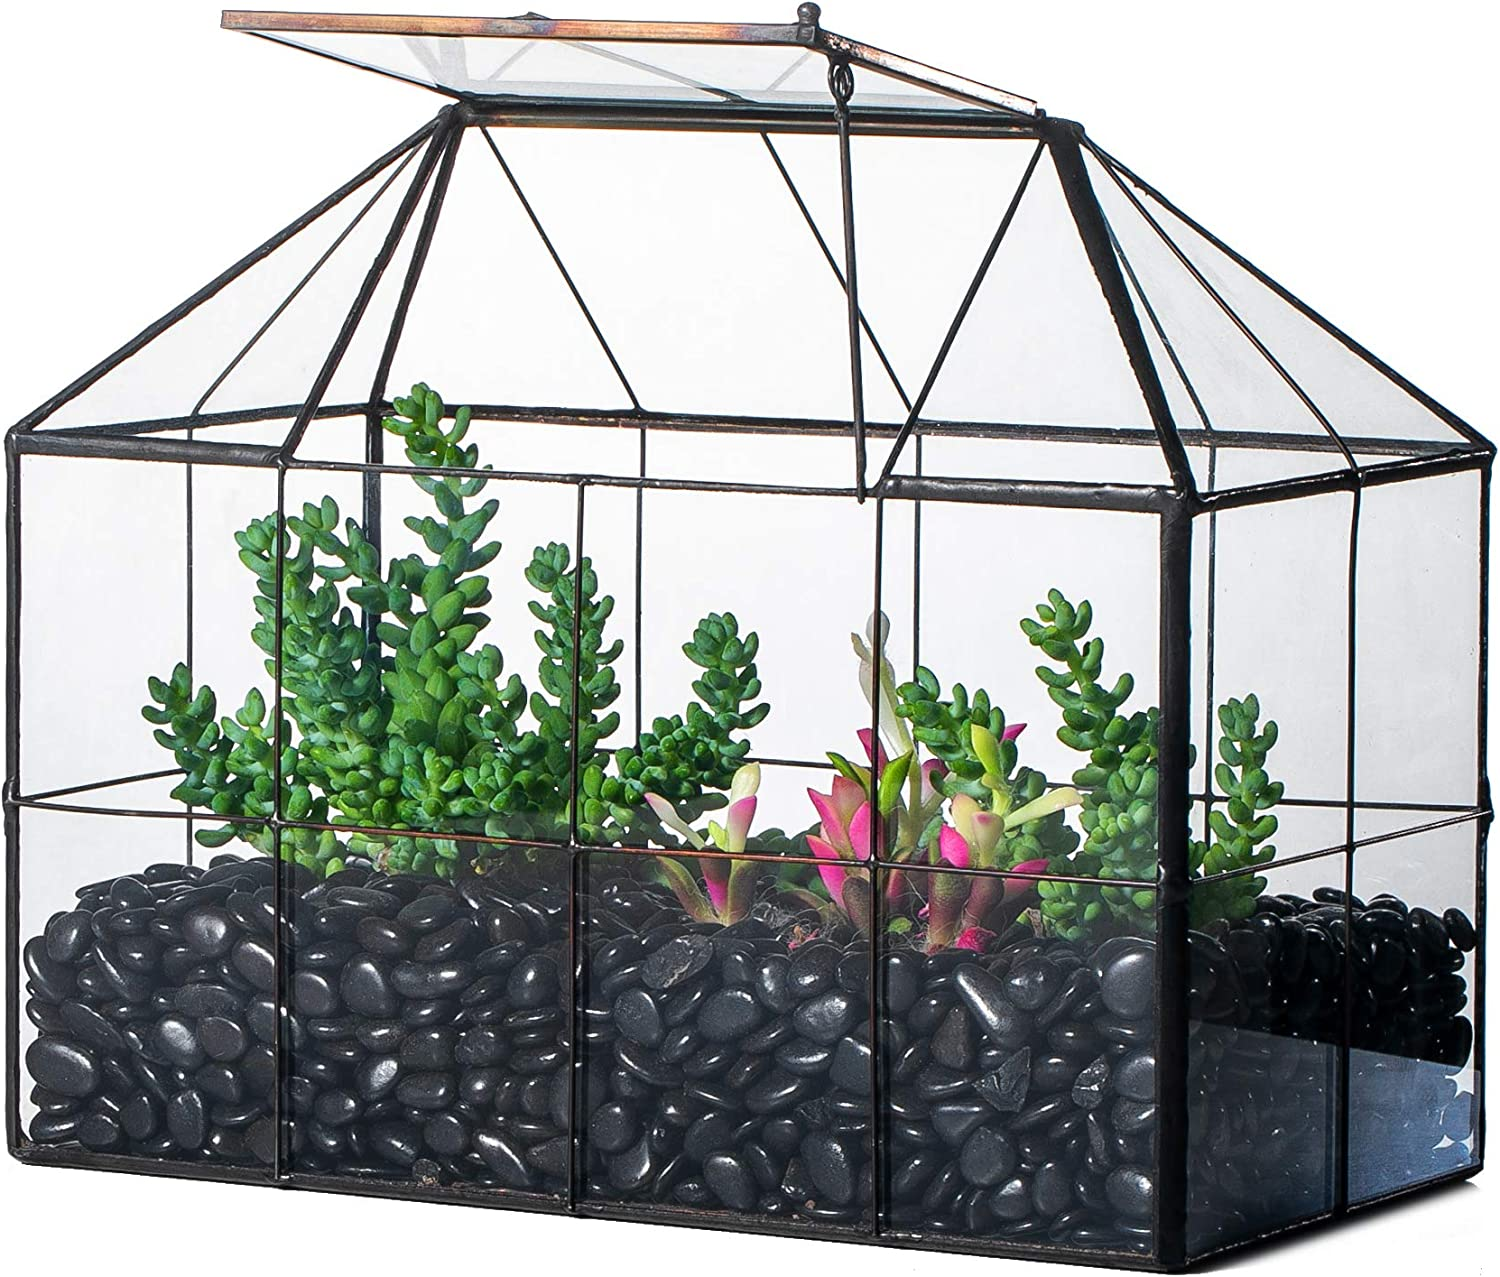 NCYP Reinforced Glass Terrarium Geometric, Black Grid House Shape Decor, Succulents Cacti Air Plants Box Planter, Miniature Container, Modern Tabletop Centerpiece (No Plants)